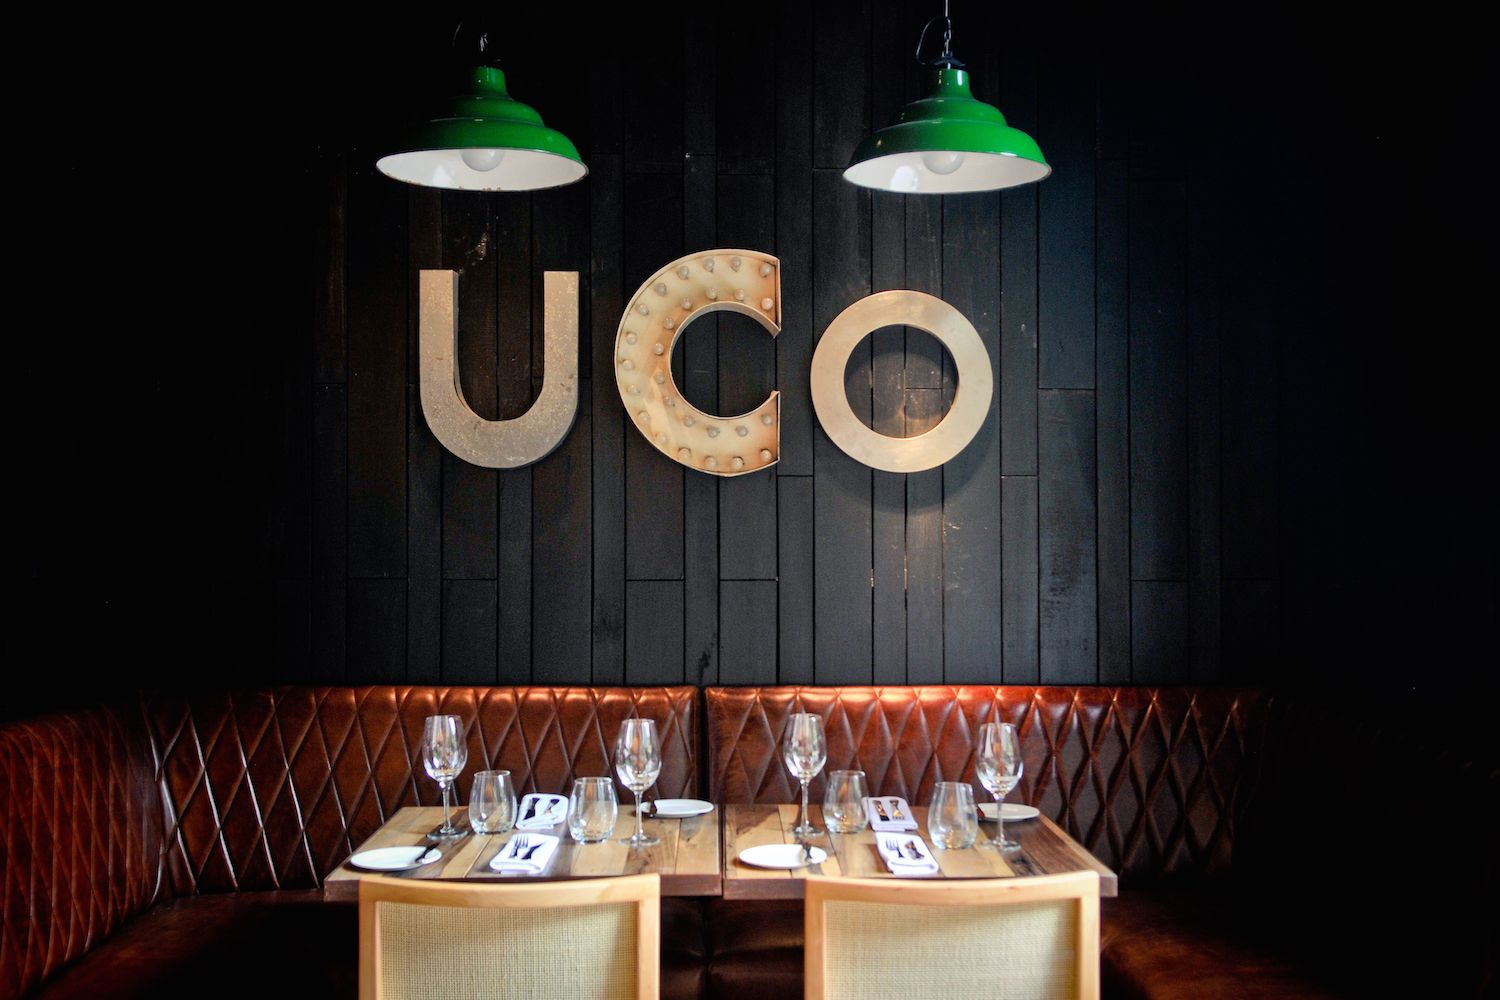 UCO at the Fierro Hotel in Buenos Aires has the best